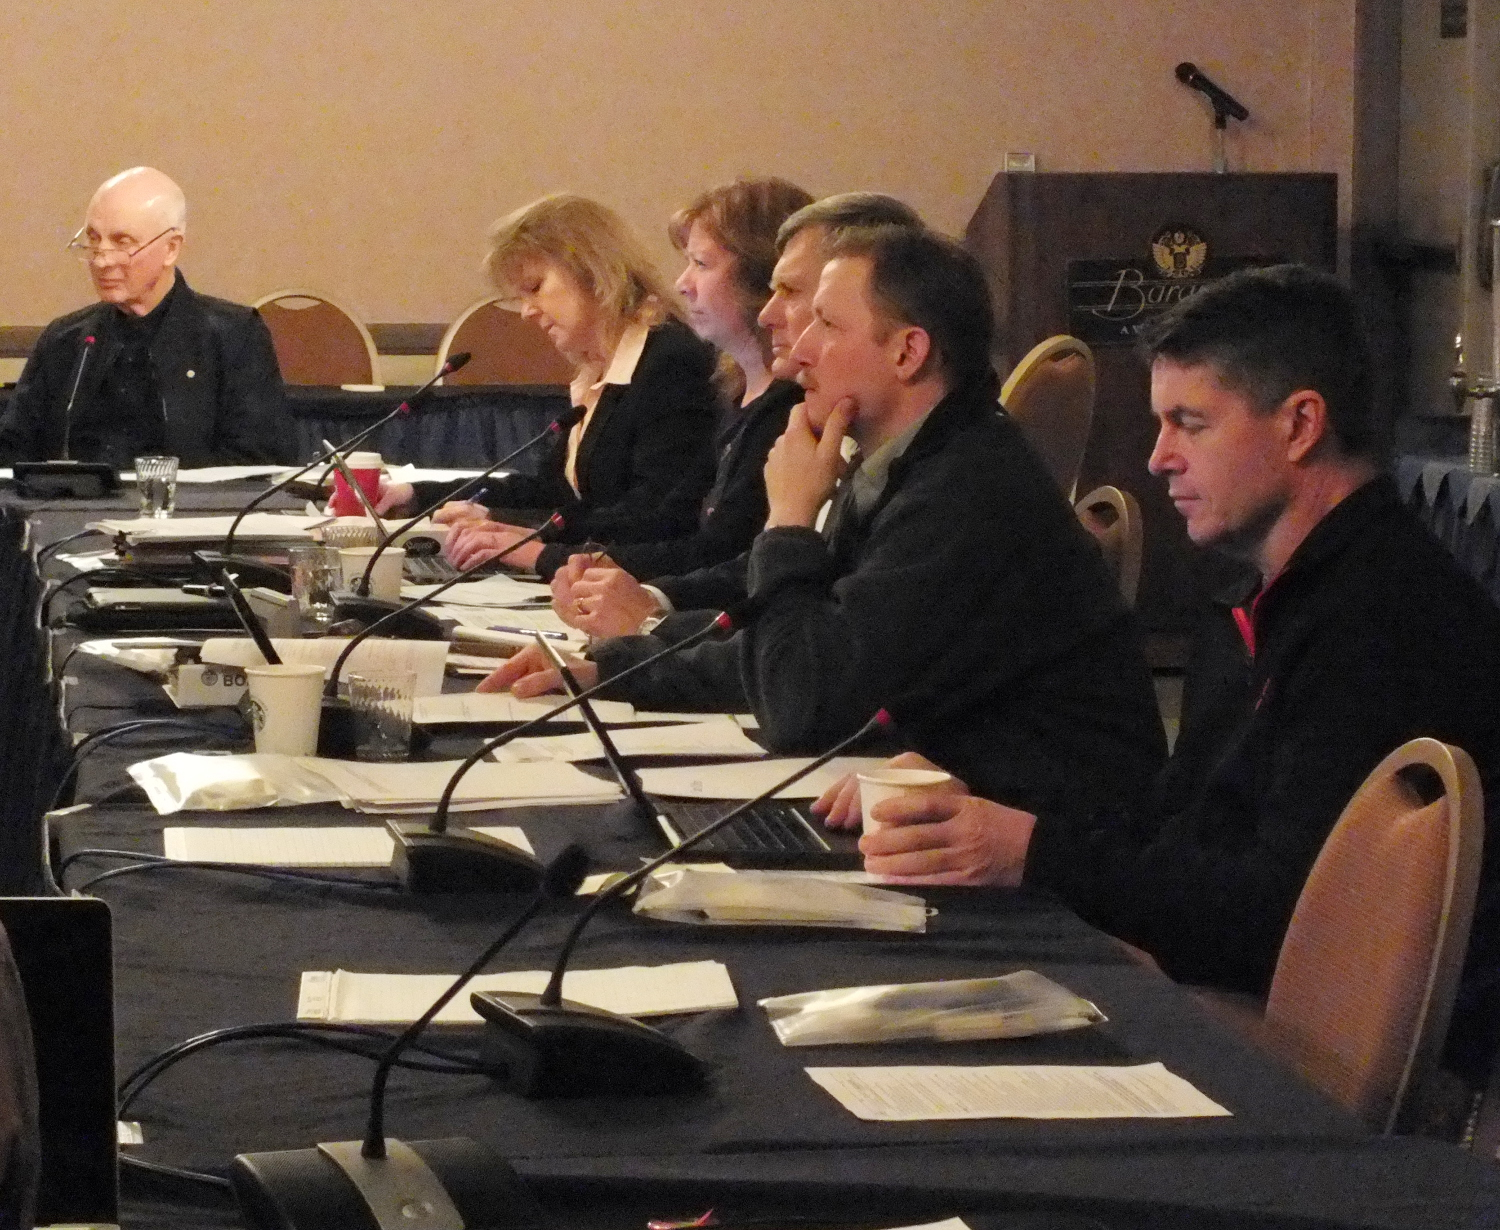 Staff and members of the Board of Game listen to ADF&G acting Commissioner Sam Cotten in Juneau on Jan. 15, 2015. (Photo by Matt Miller/KTOO)